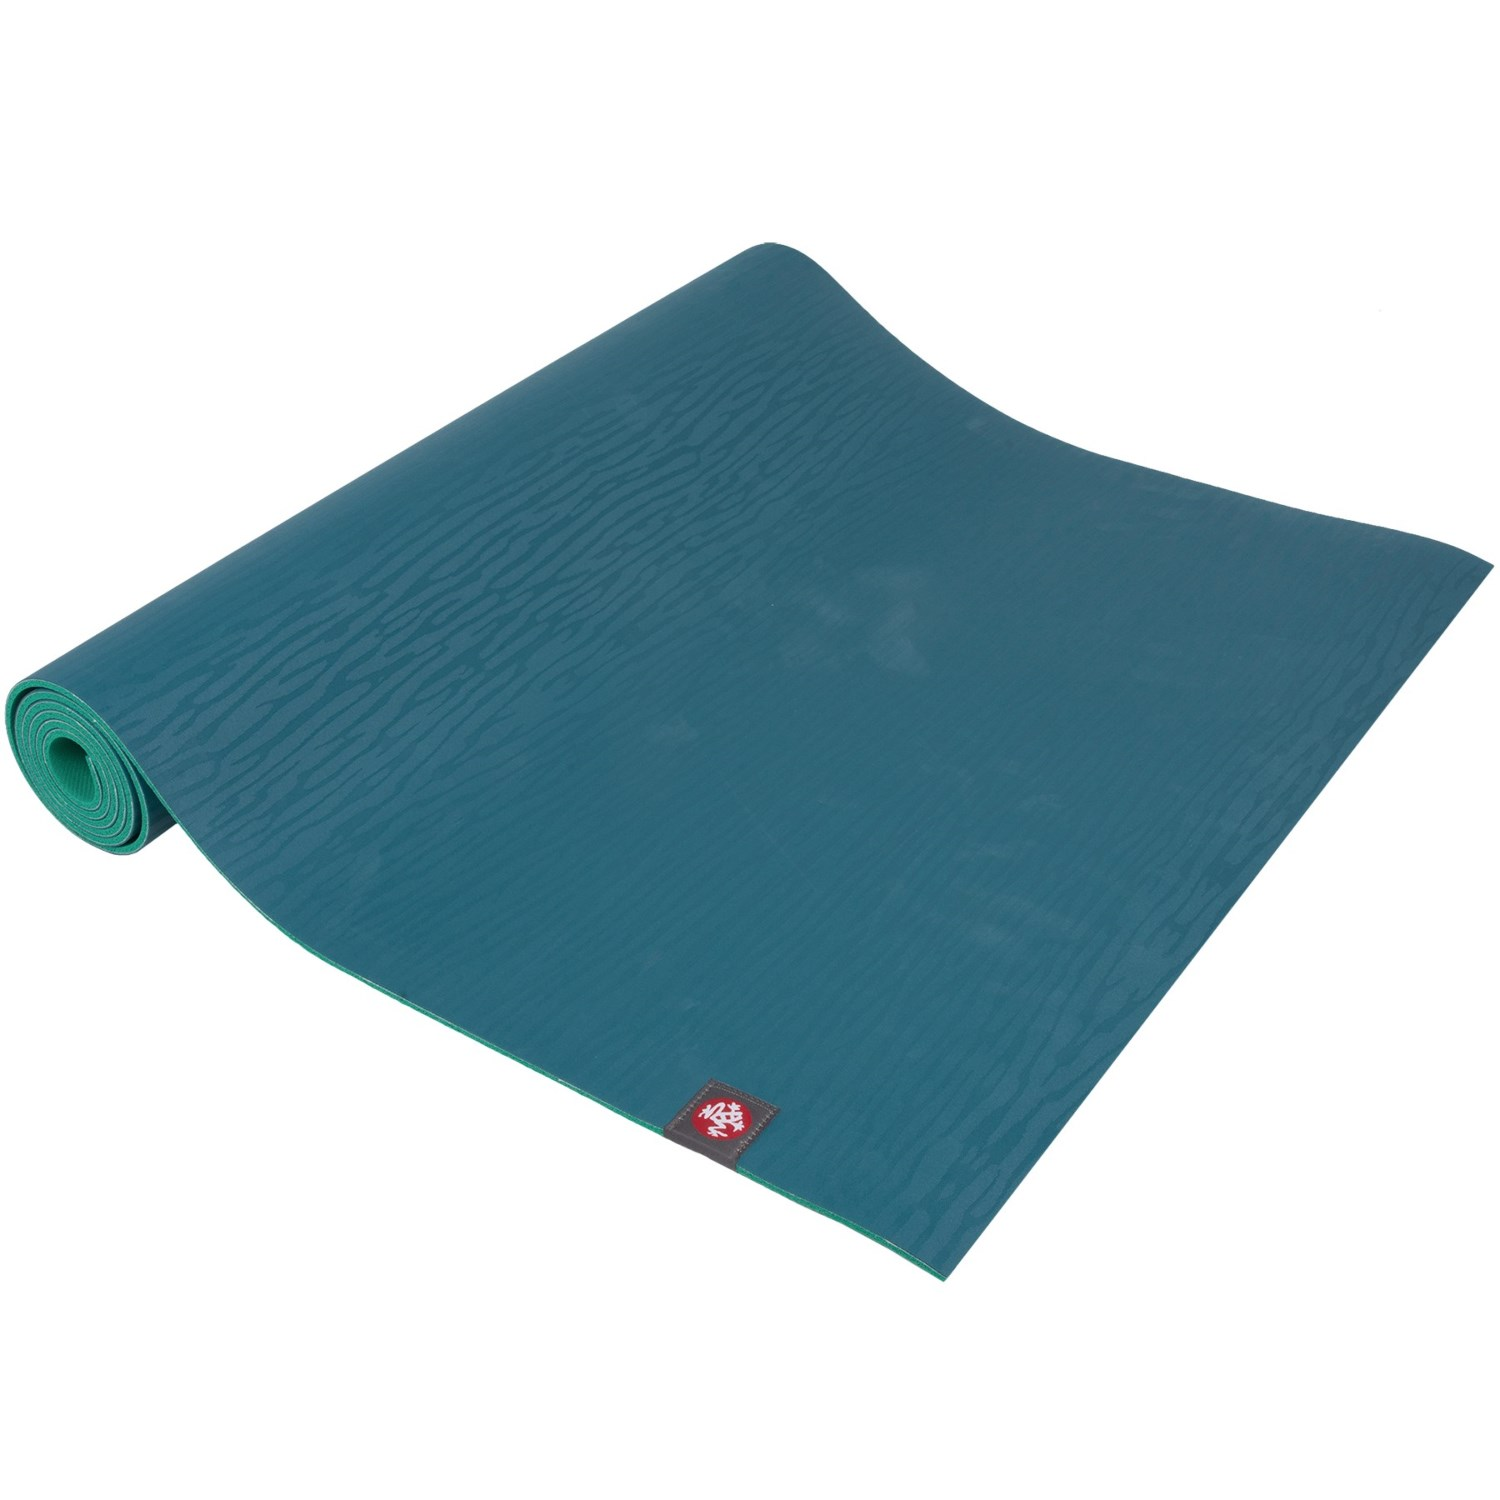 Manduka Eko Yoga Mat 5mm 6685r Save 43